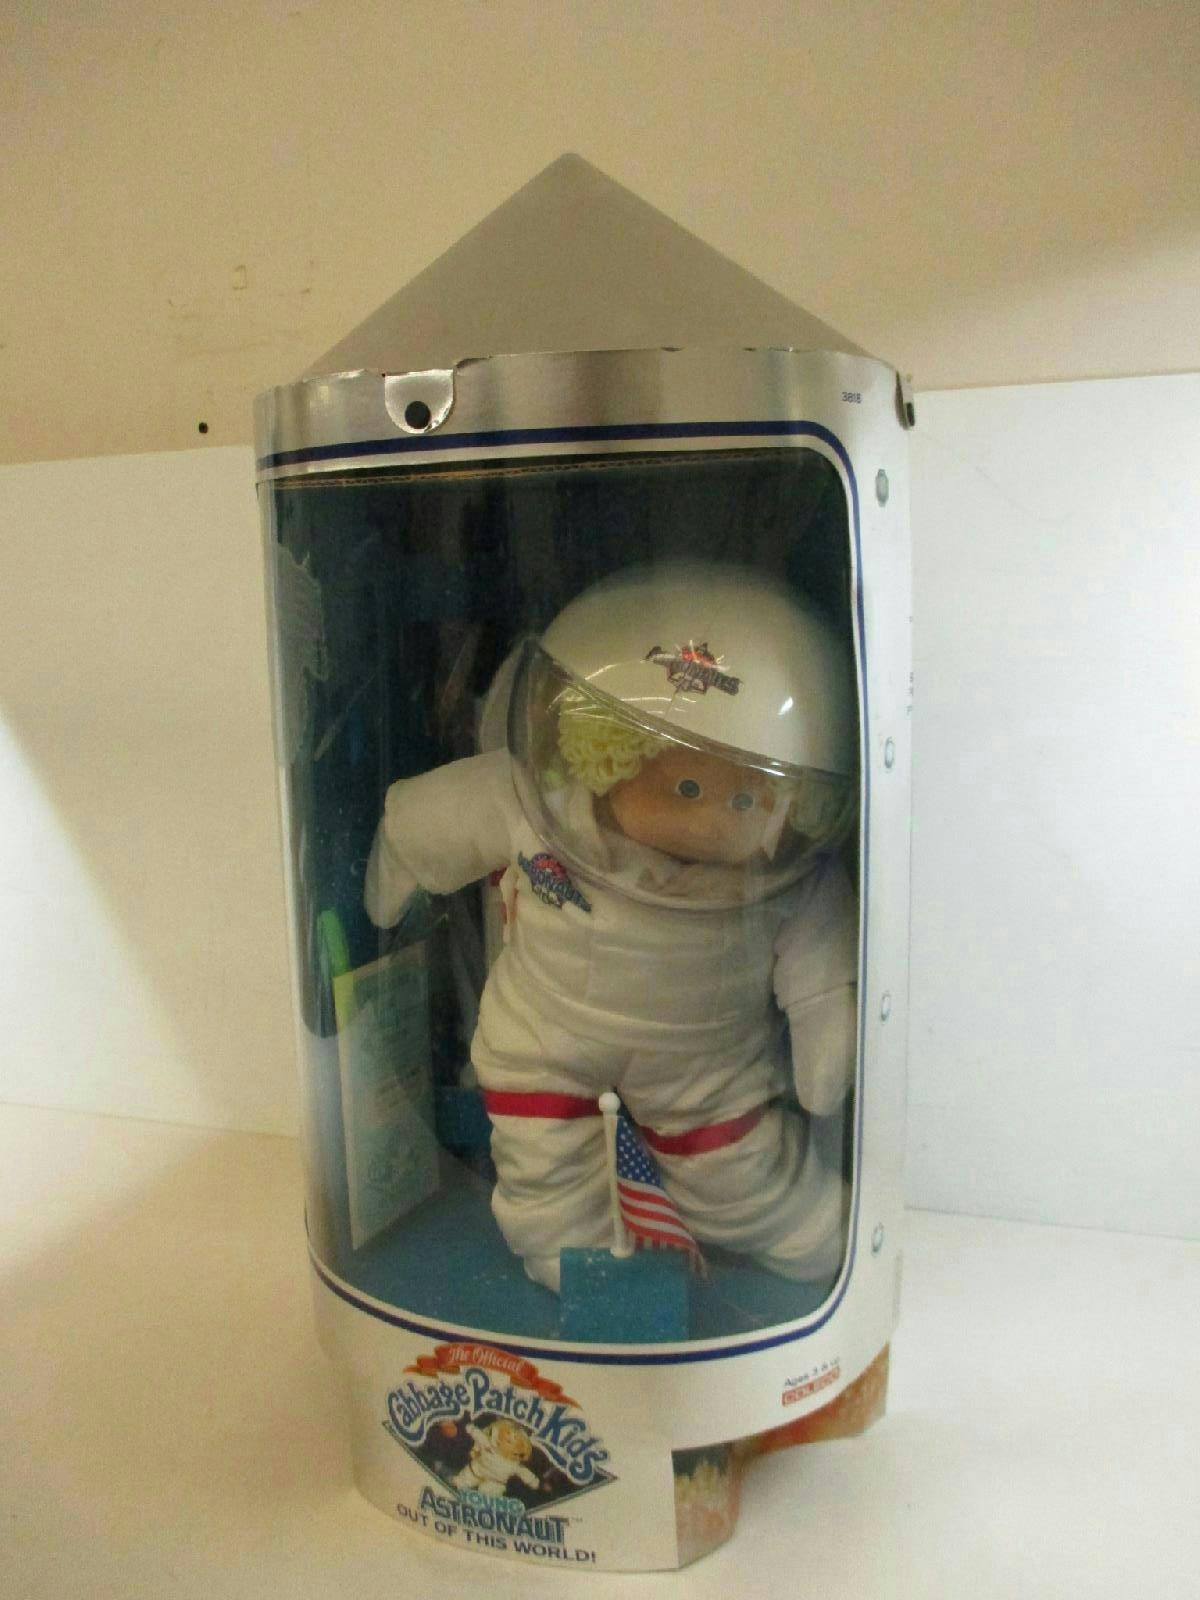 young astronauts cabbage patch doll - photo #20